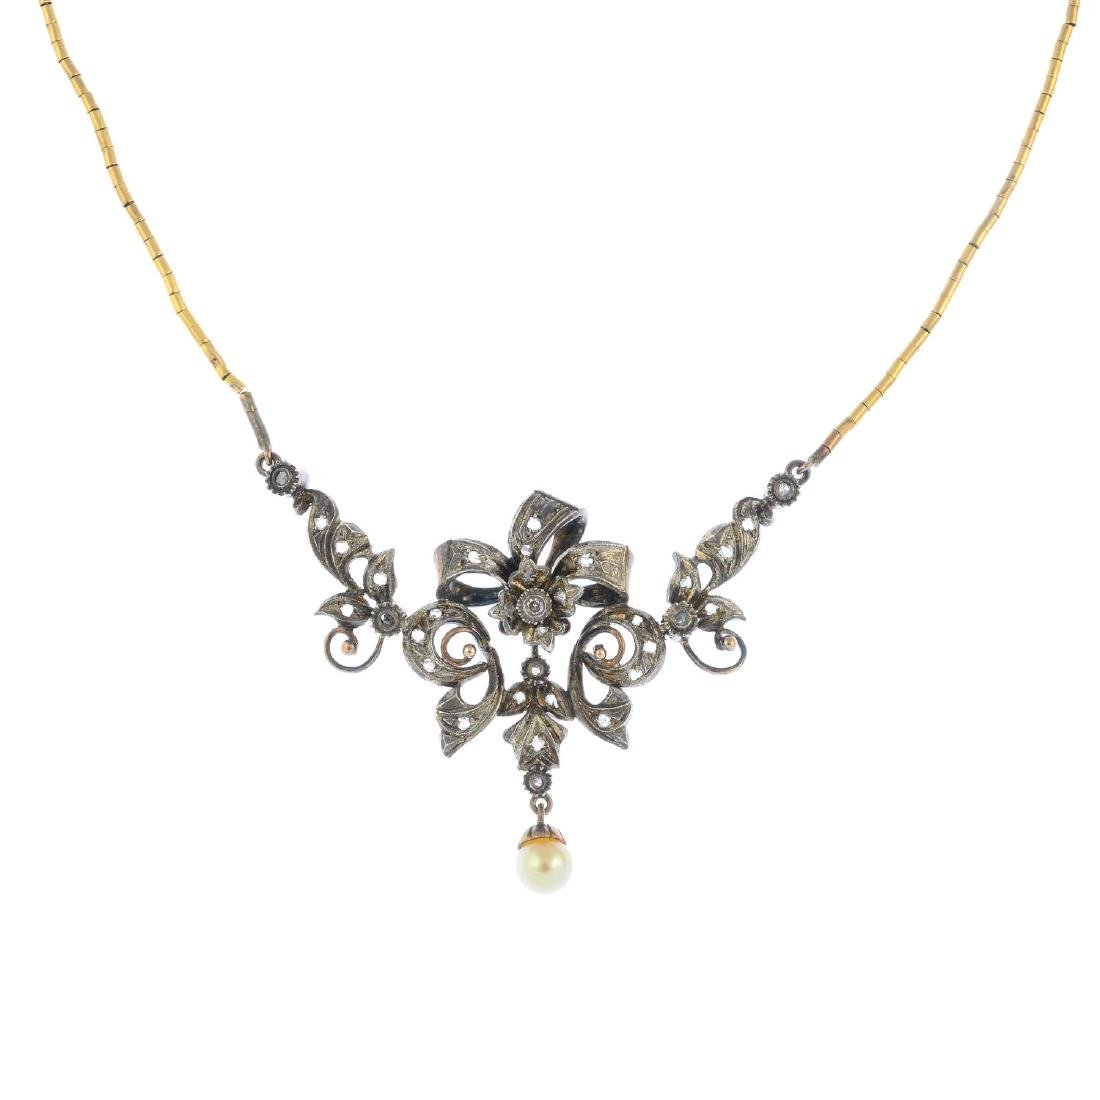 A cultured pearl and diamond necklace. Of openwork